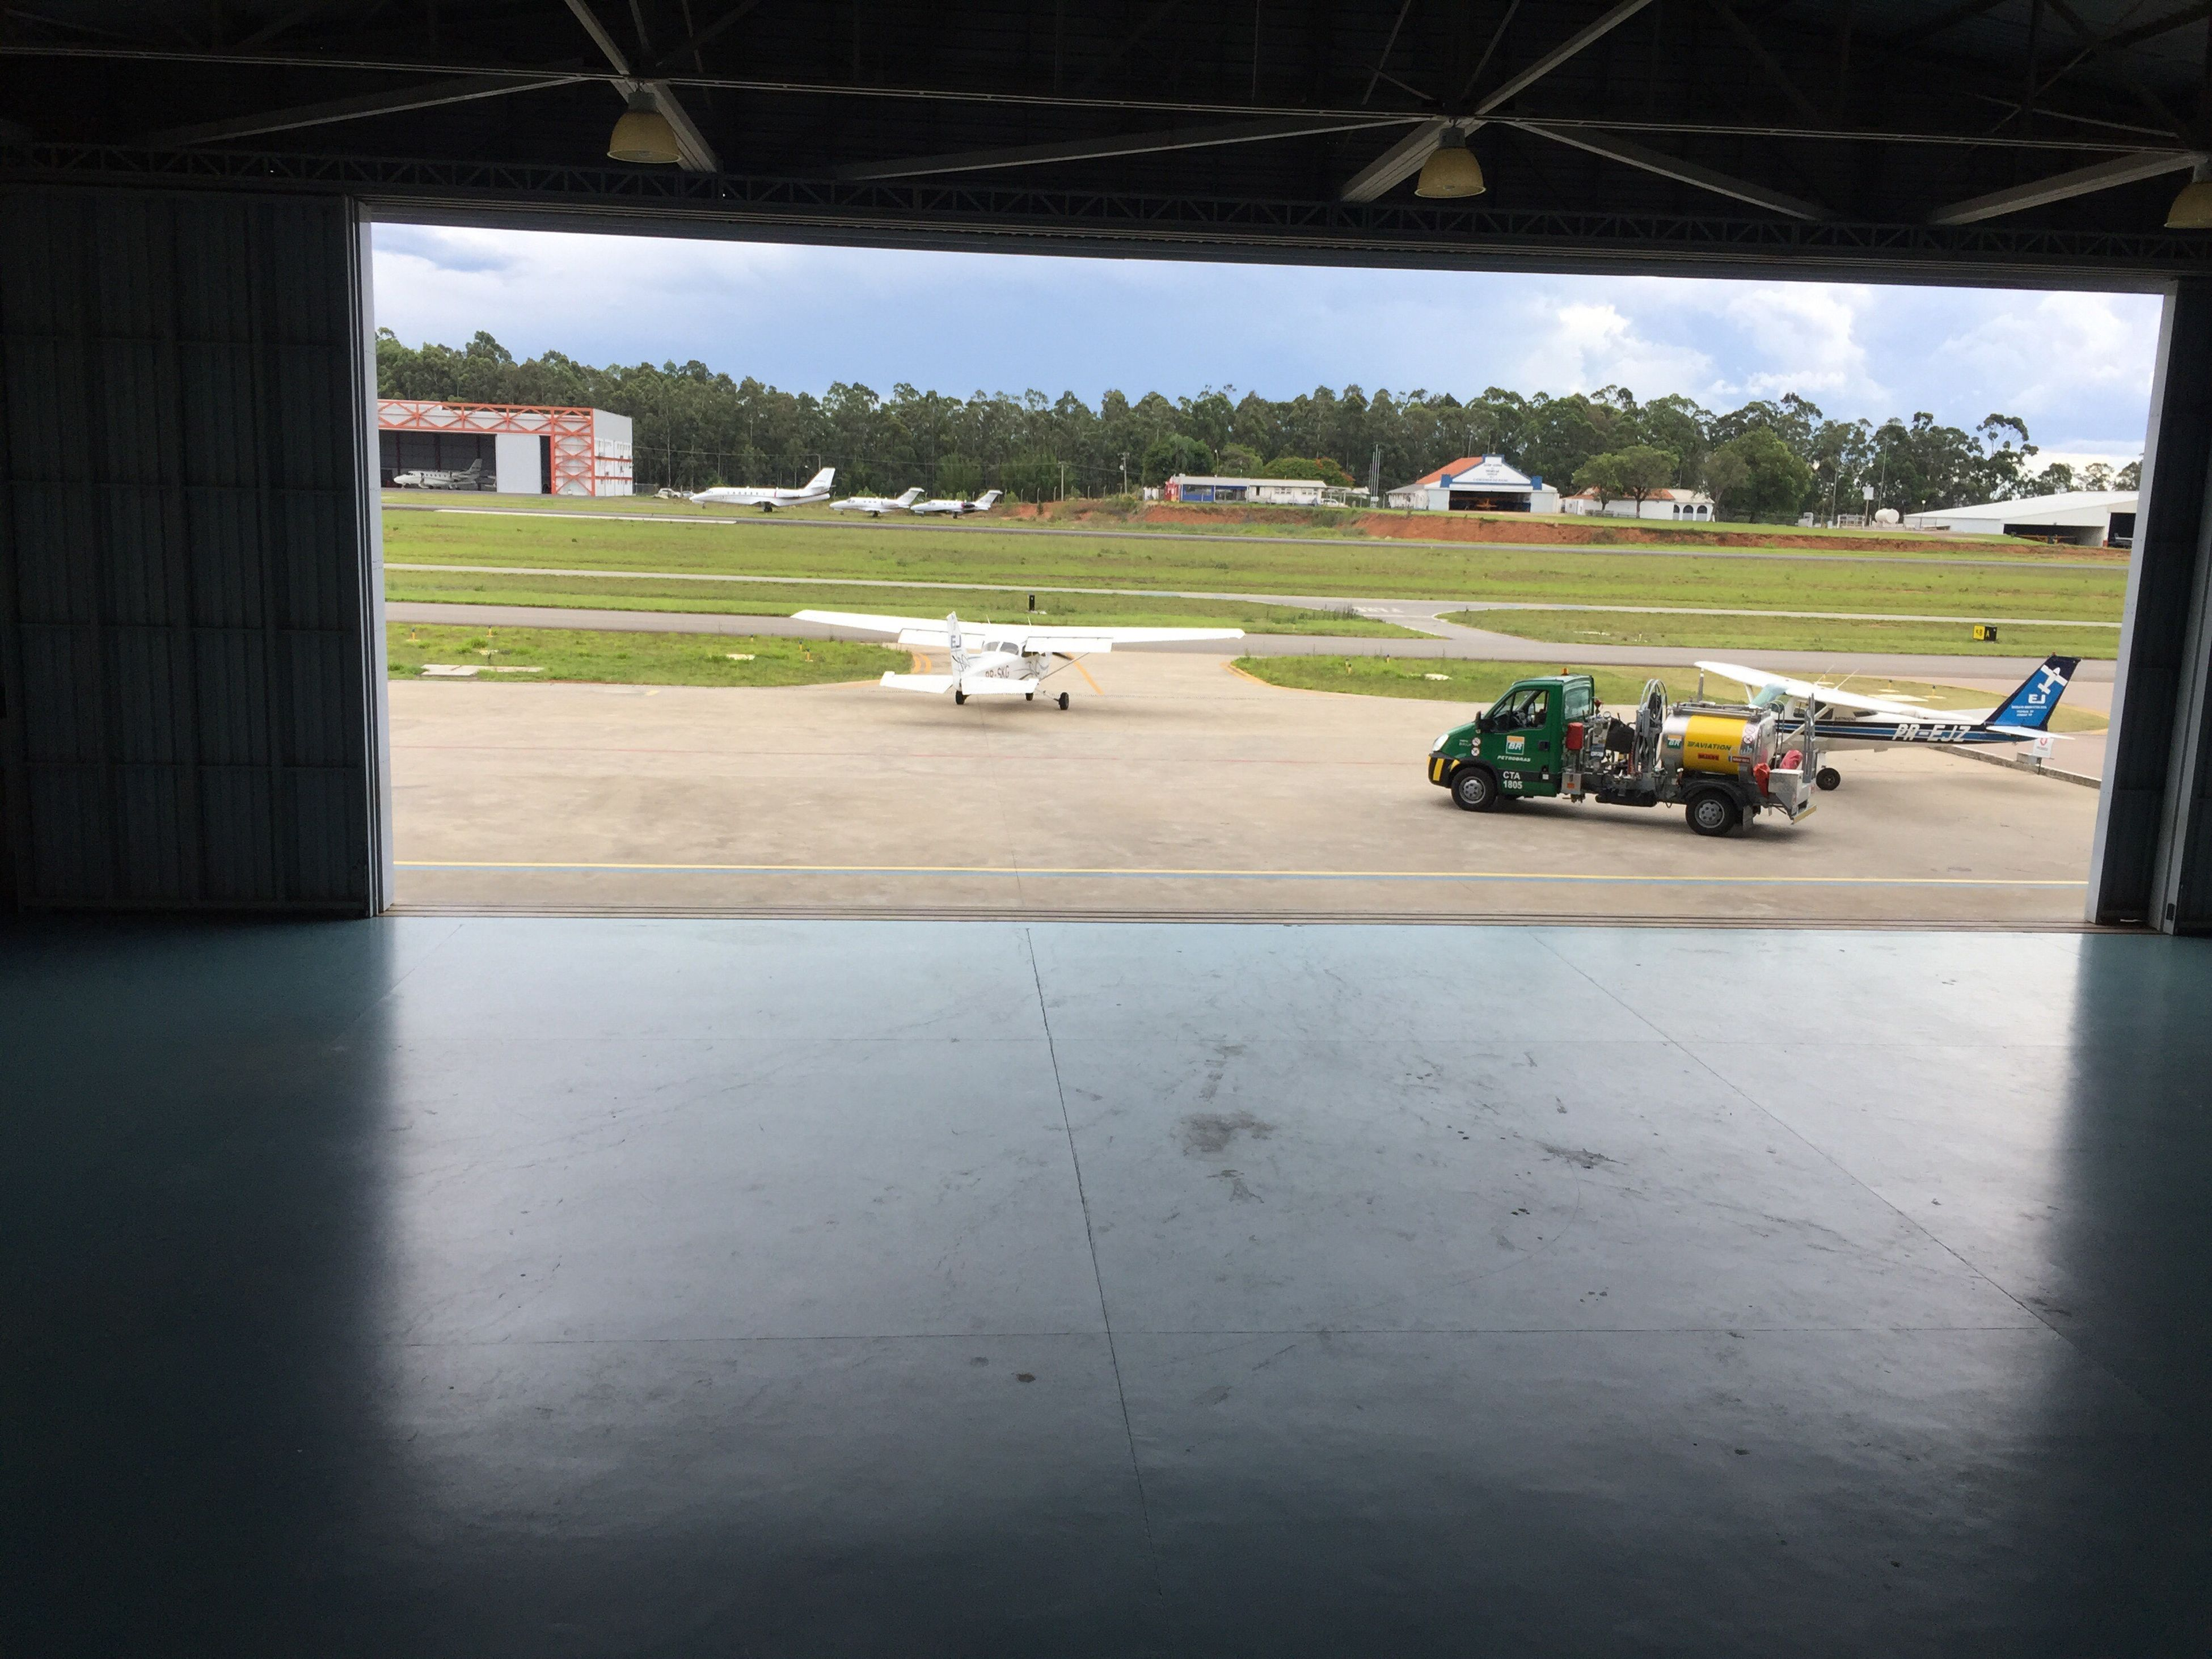 car, airport runway, airport, no people, day, outdoors